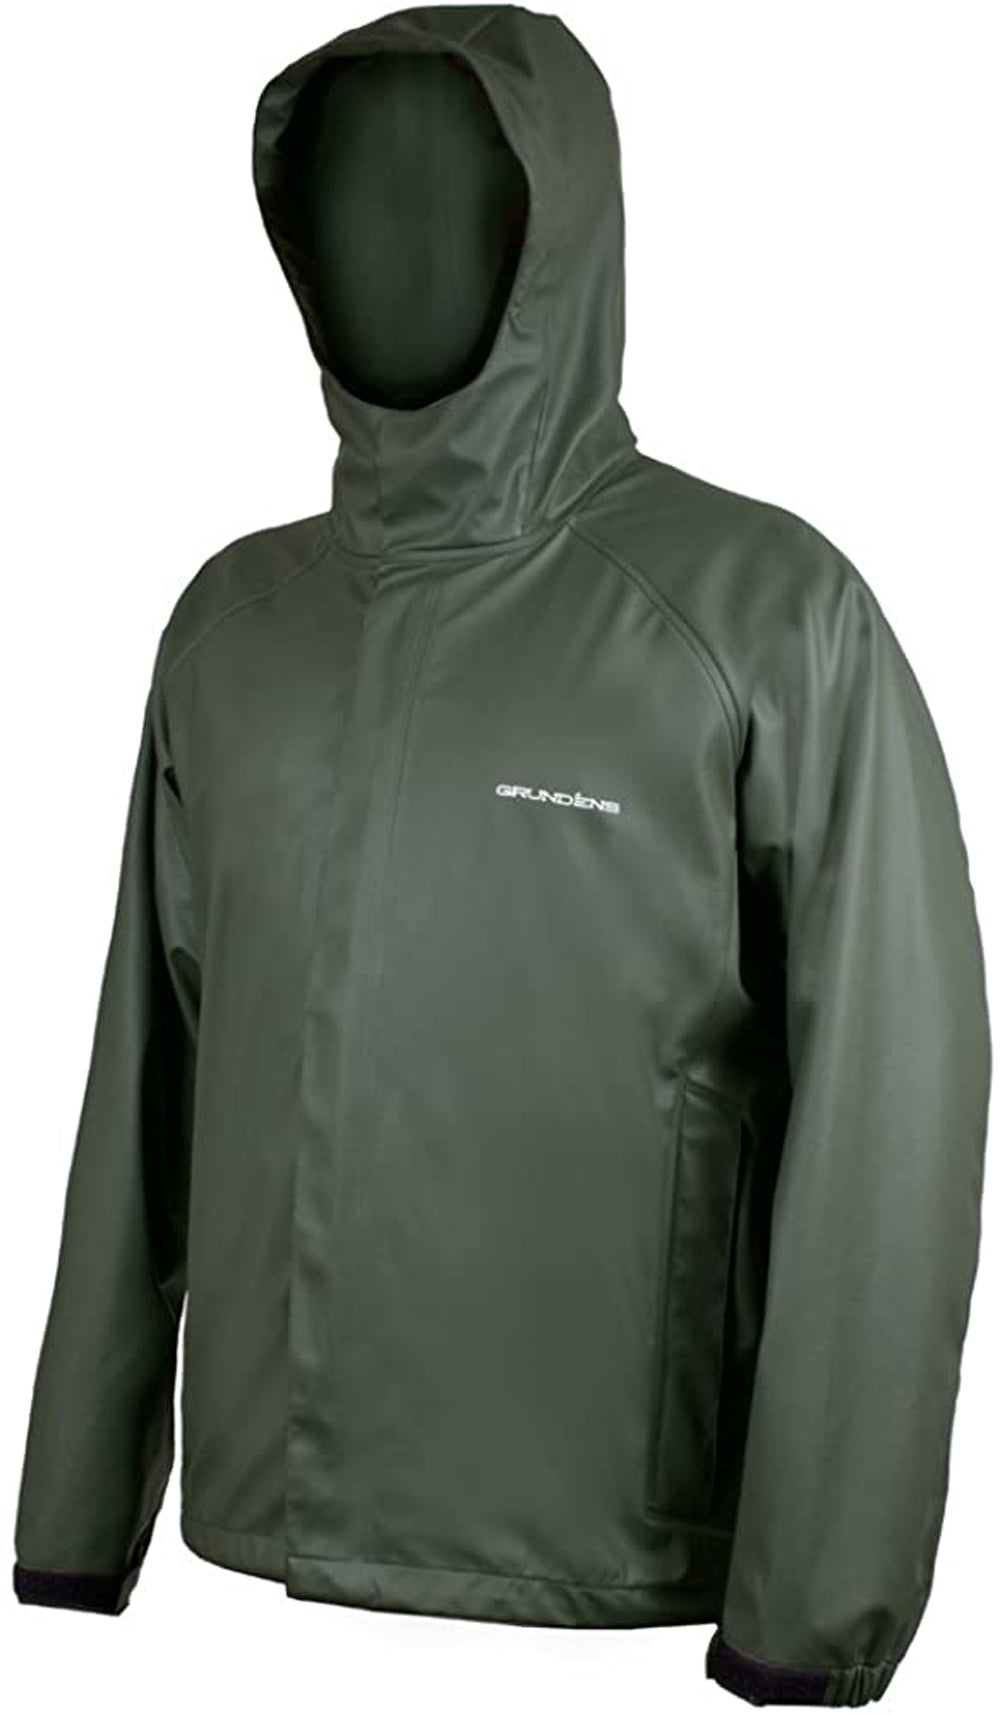 Neptune Jacket in Green color